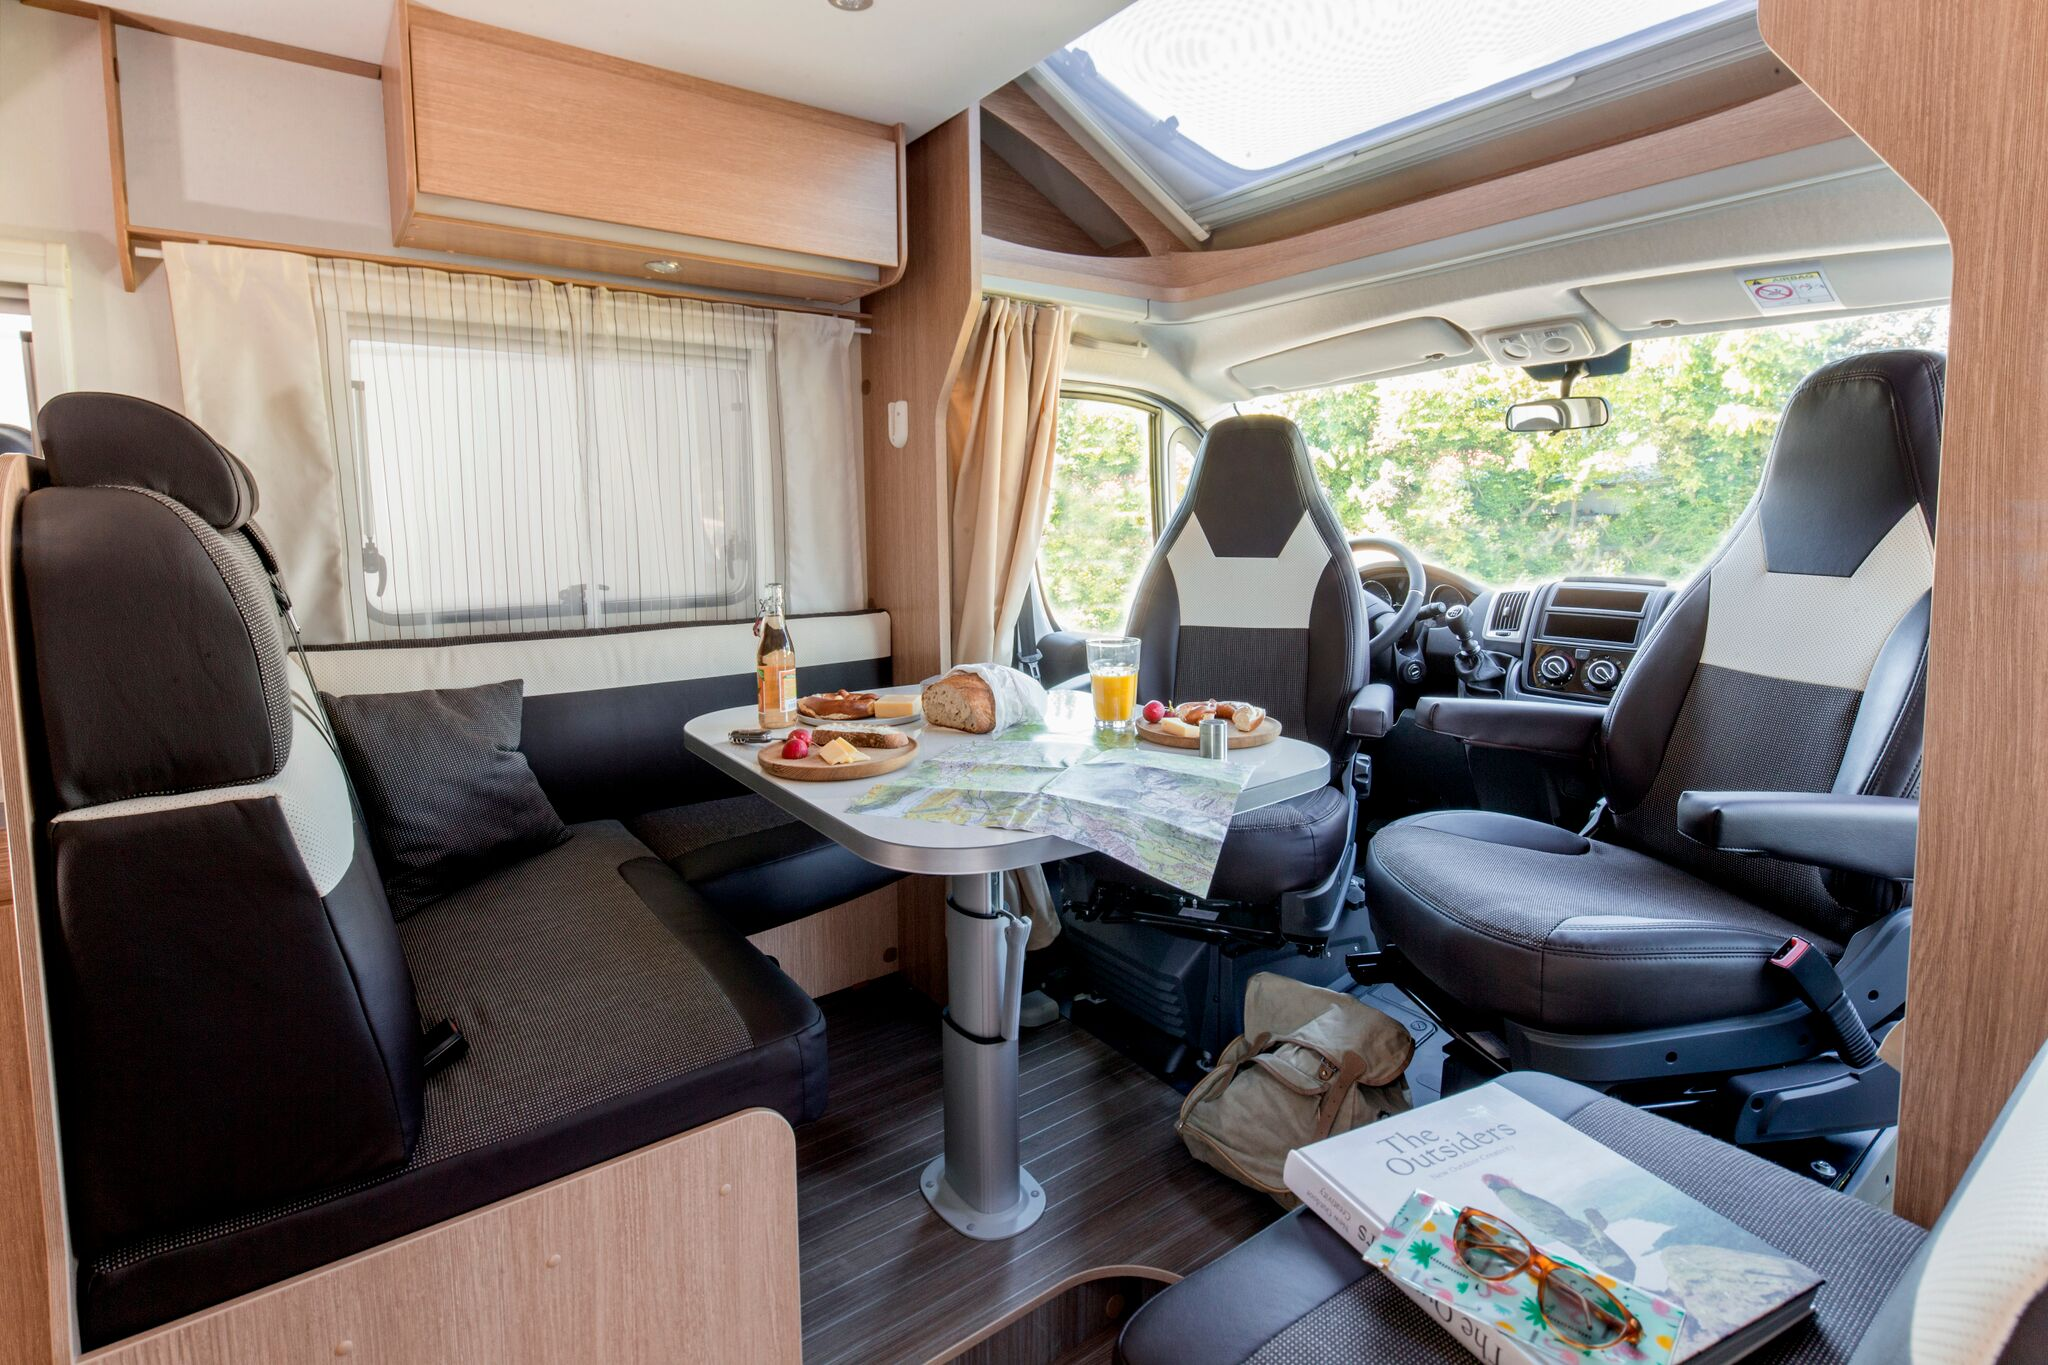 Living area in T68 Dethleff Sunlight motorhome